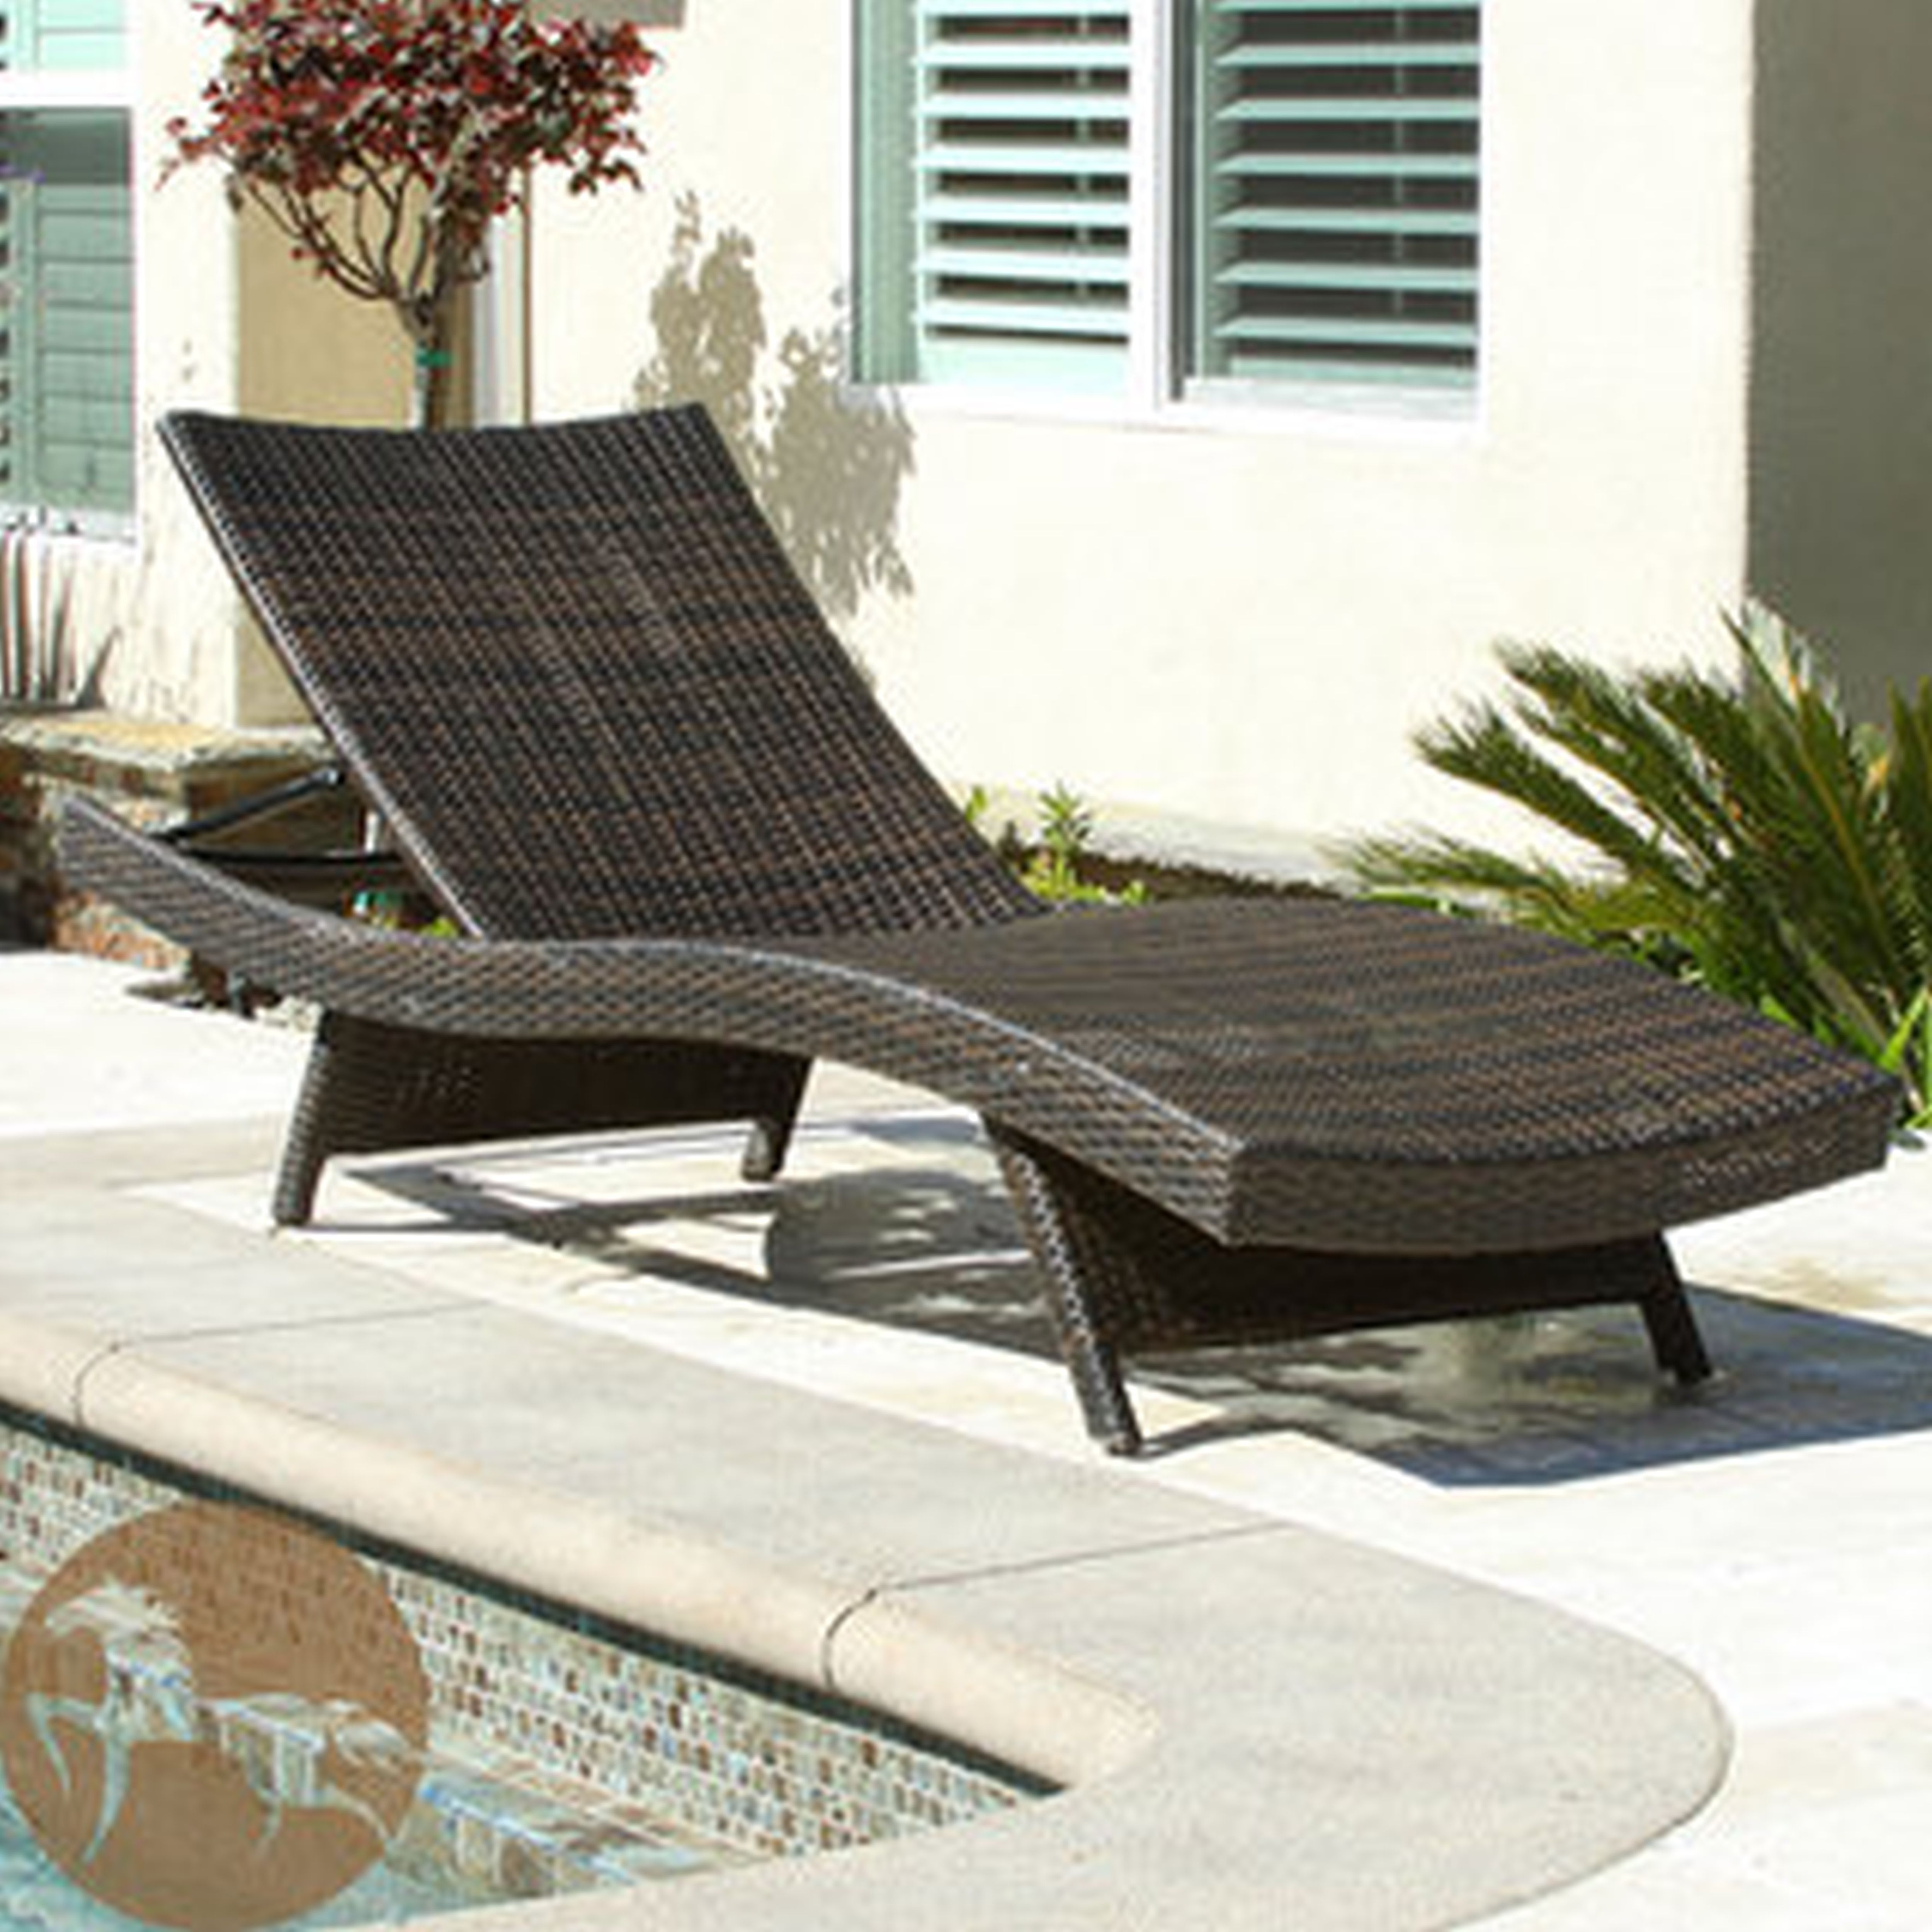 Walmart Chaise Lounges Pertaining To Popular Outdoor : Chaise Lounge Sofa Lowes Patio Furniture Clearance (View 7 of 15)